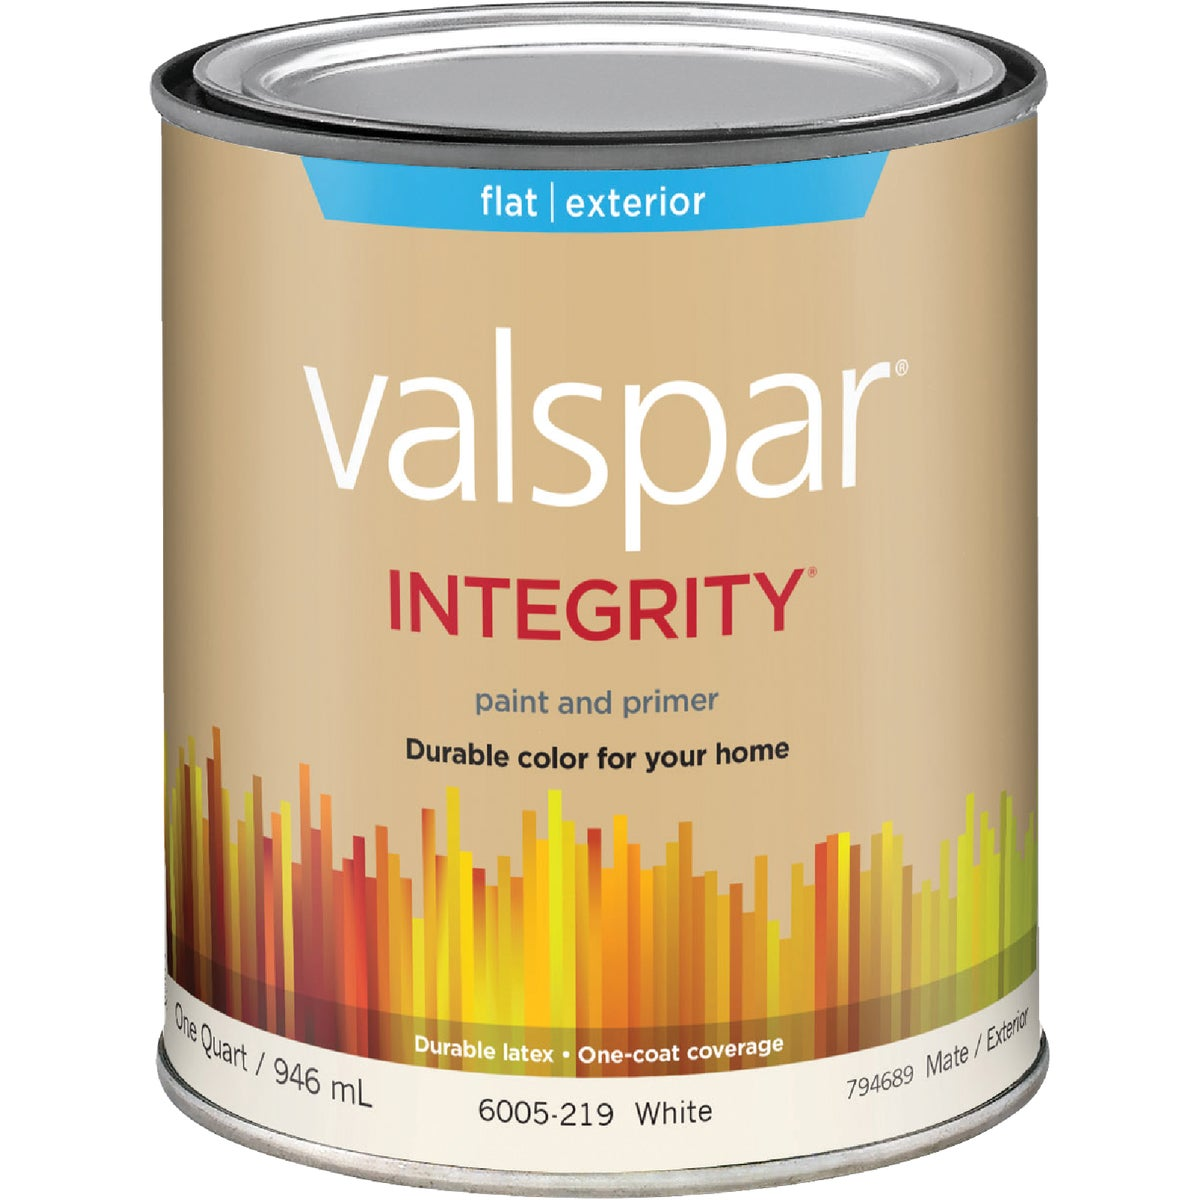 EXT FLAT WHITE PAINT - 004.6005219.005 by Valspar Corp